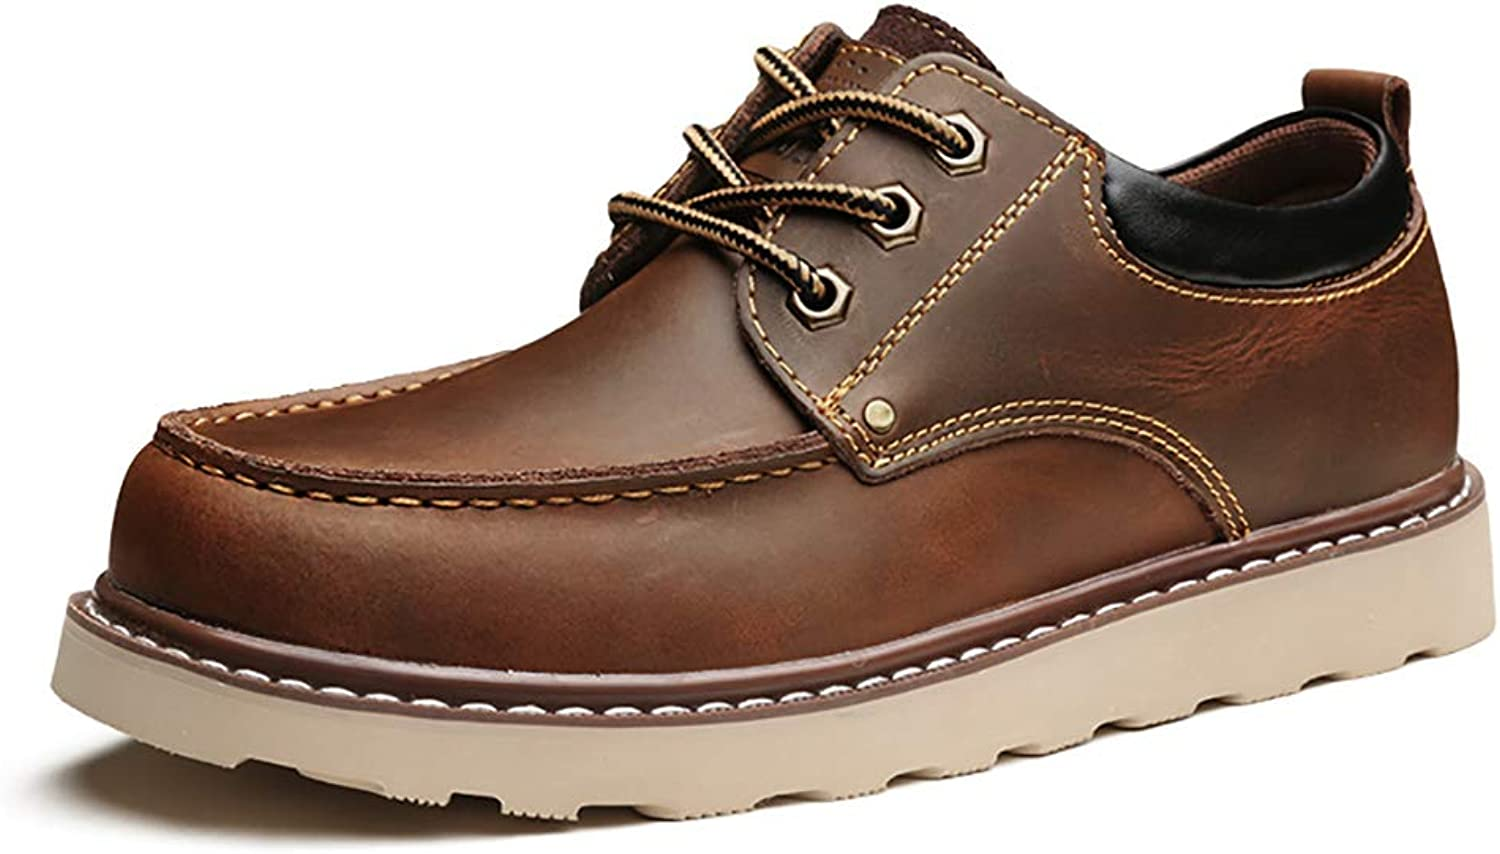 RJNSPx Leather shoes Men's big shoes, winter casual shoes, England low cut leather boots Martin boots mens dress shoes (Size   5.5 UK)